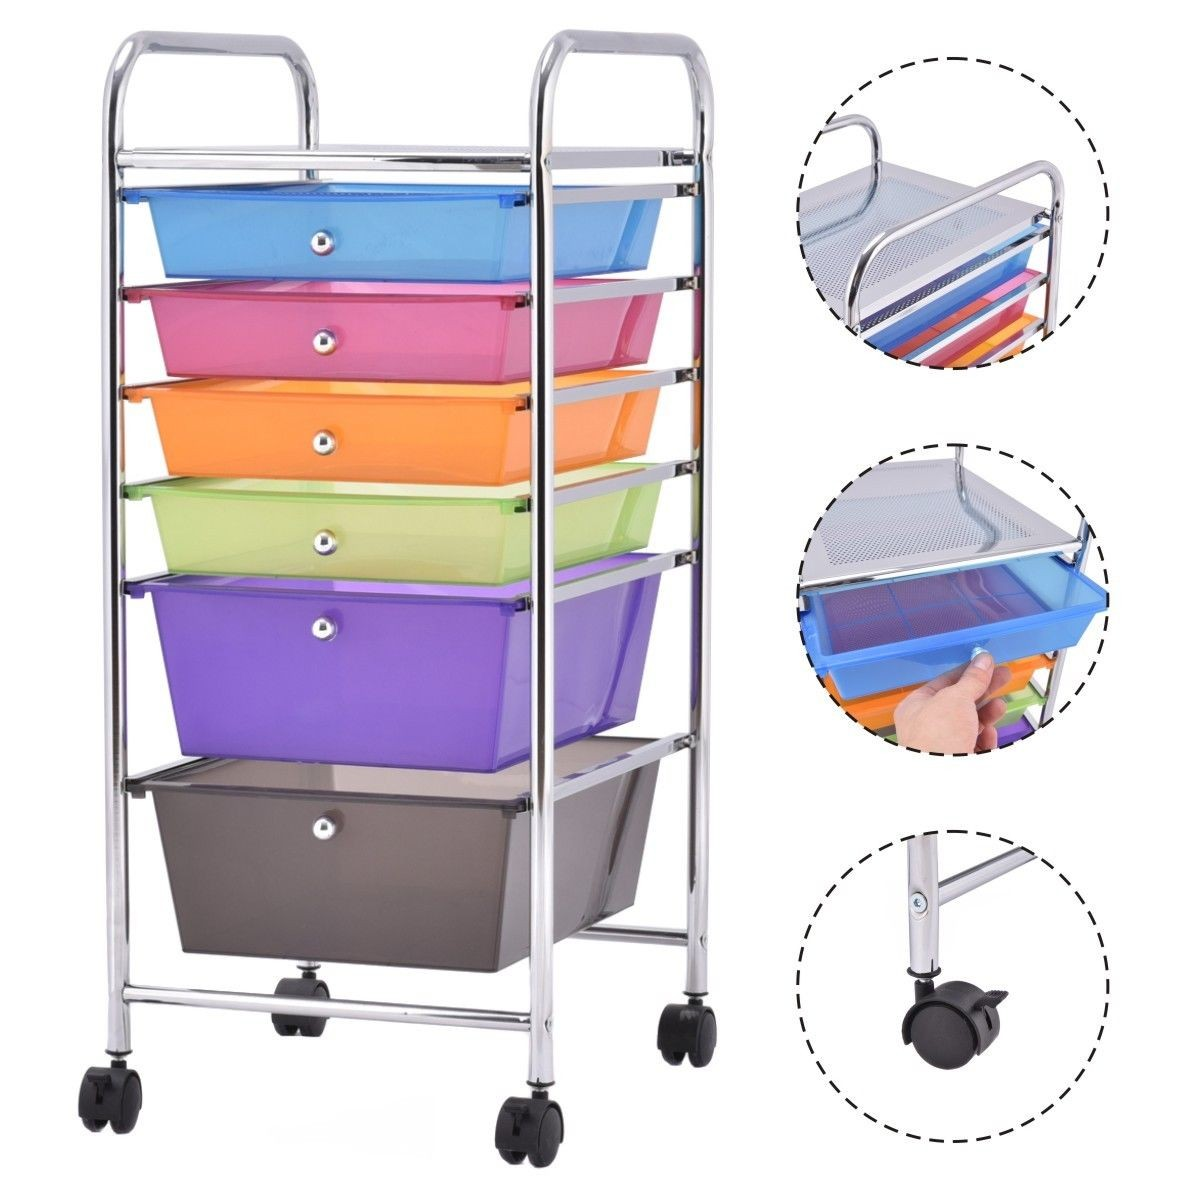 Carts & Drawer Storage : Target